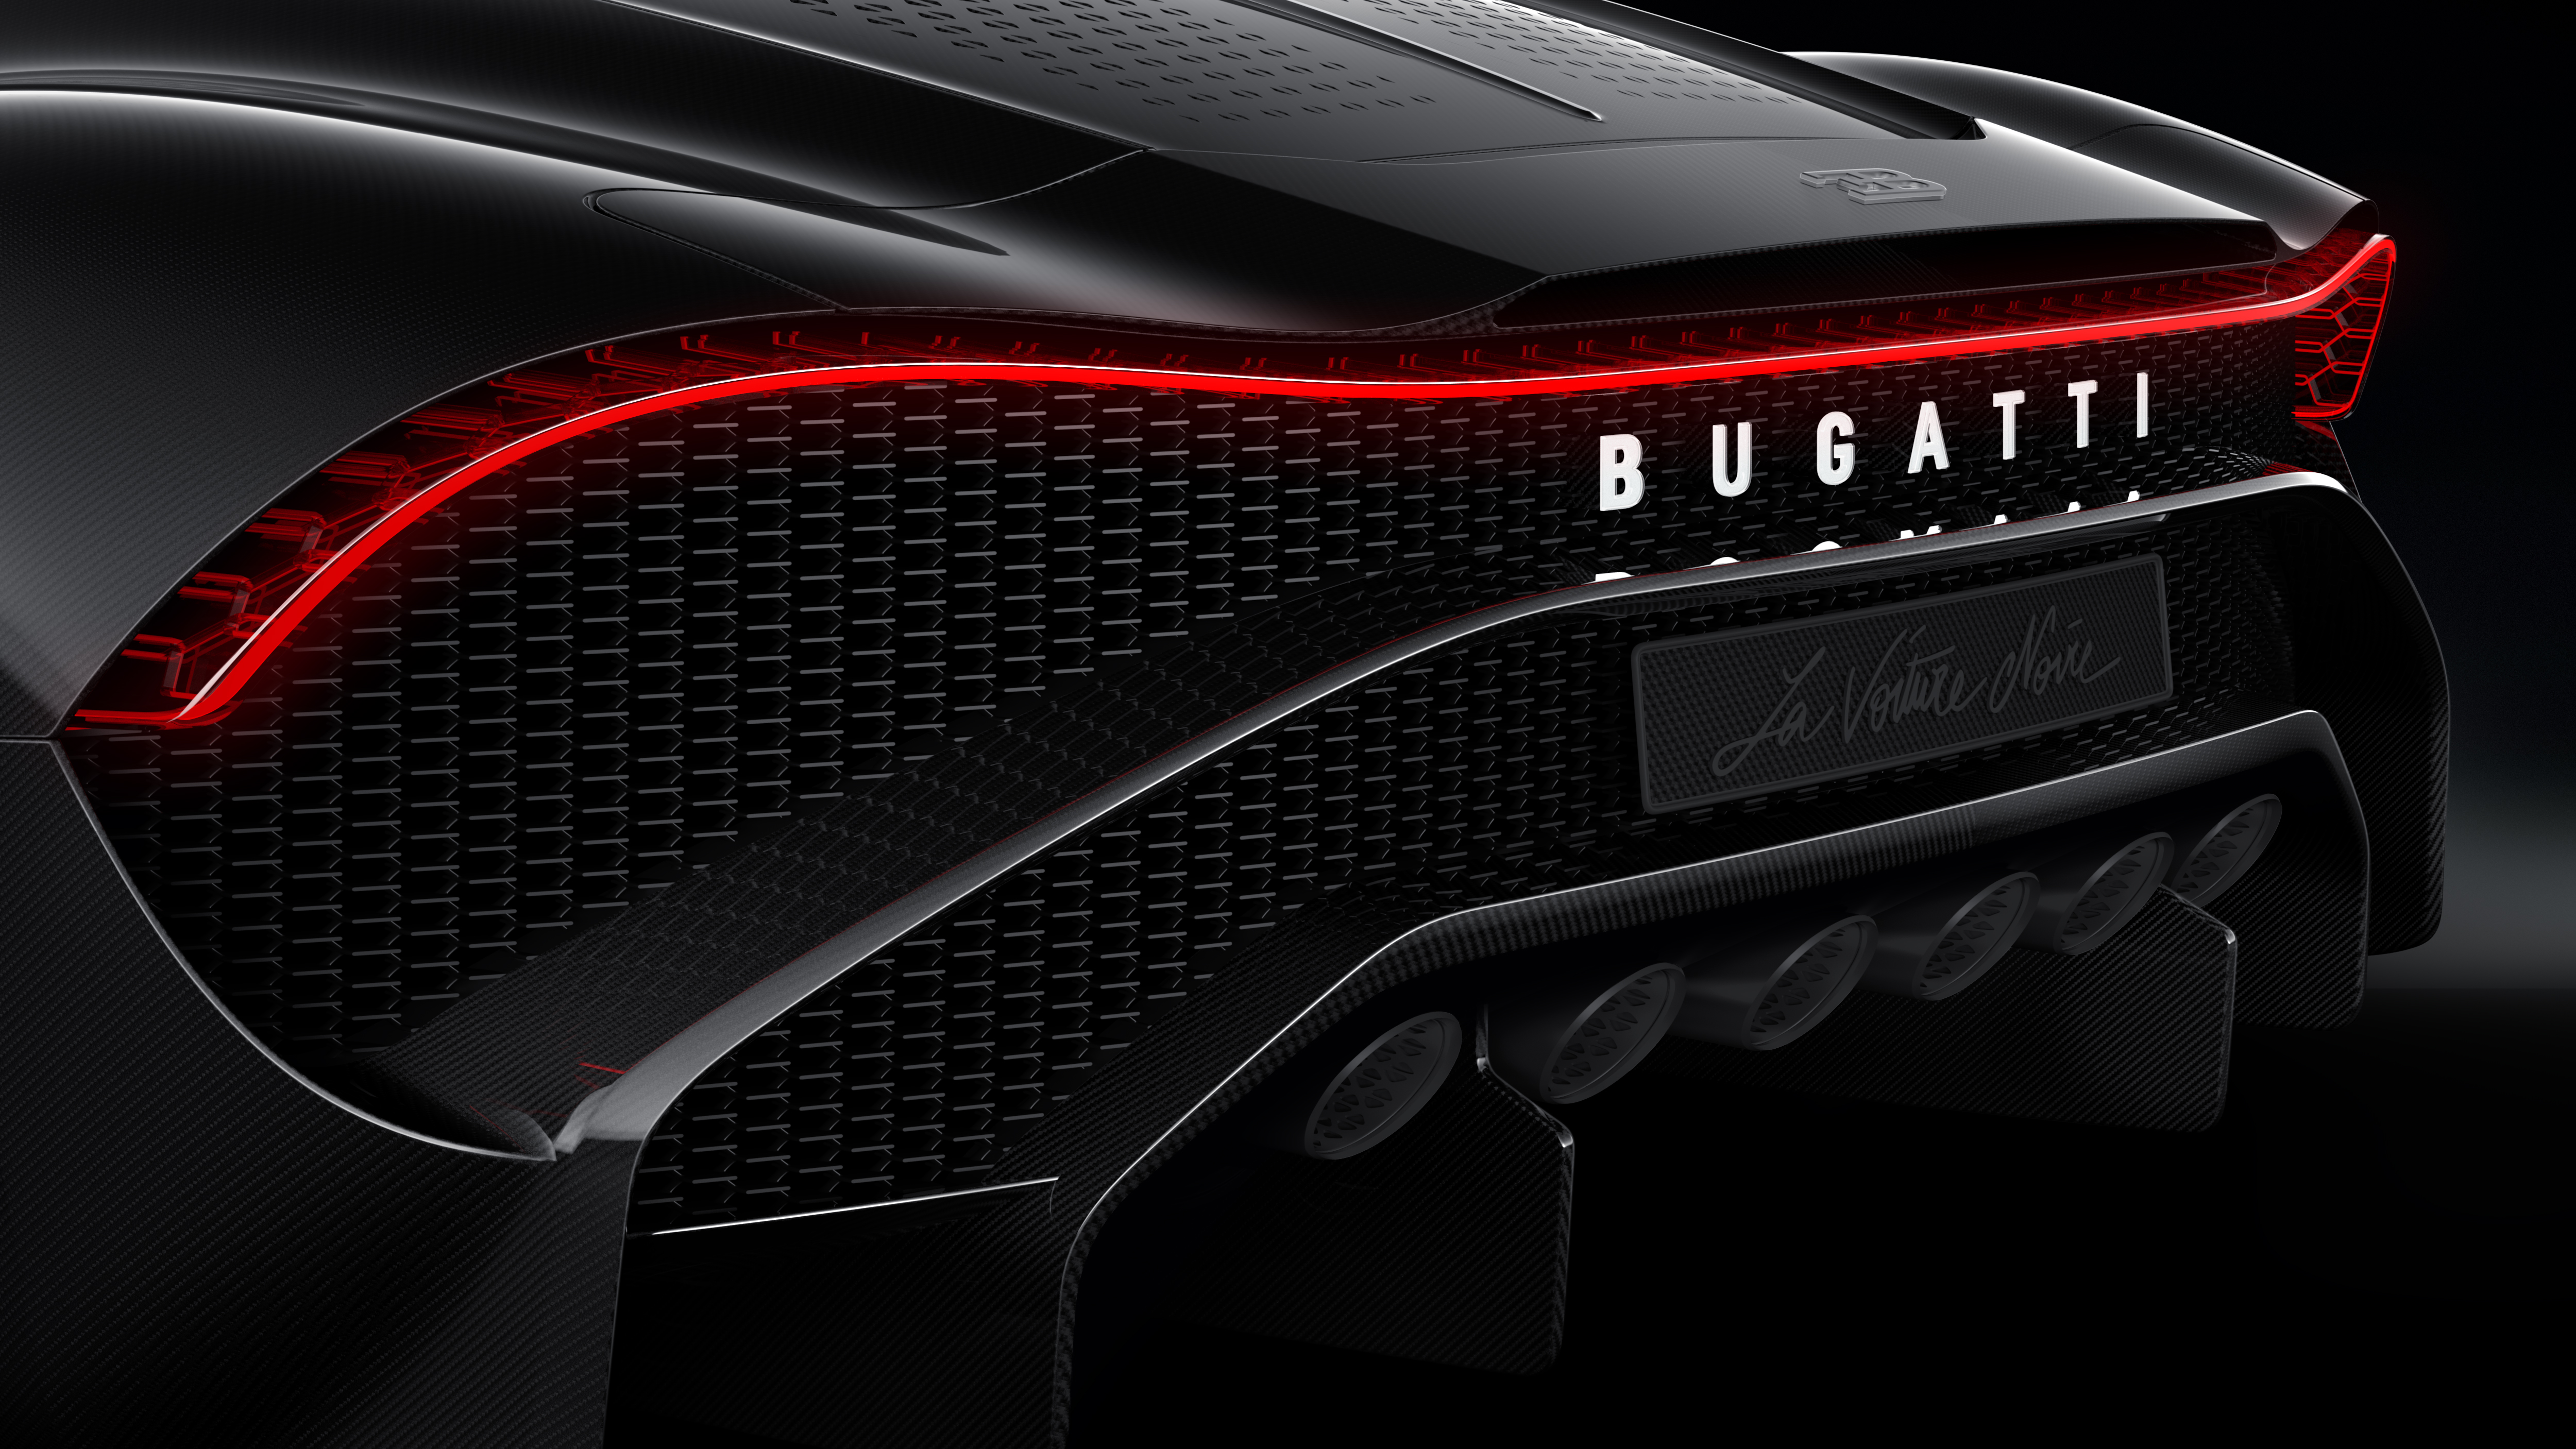 2019 bugatti la voiture noire 538924 best quality free high resolution car images mad4wheels - Voiture wallpaper ...